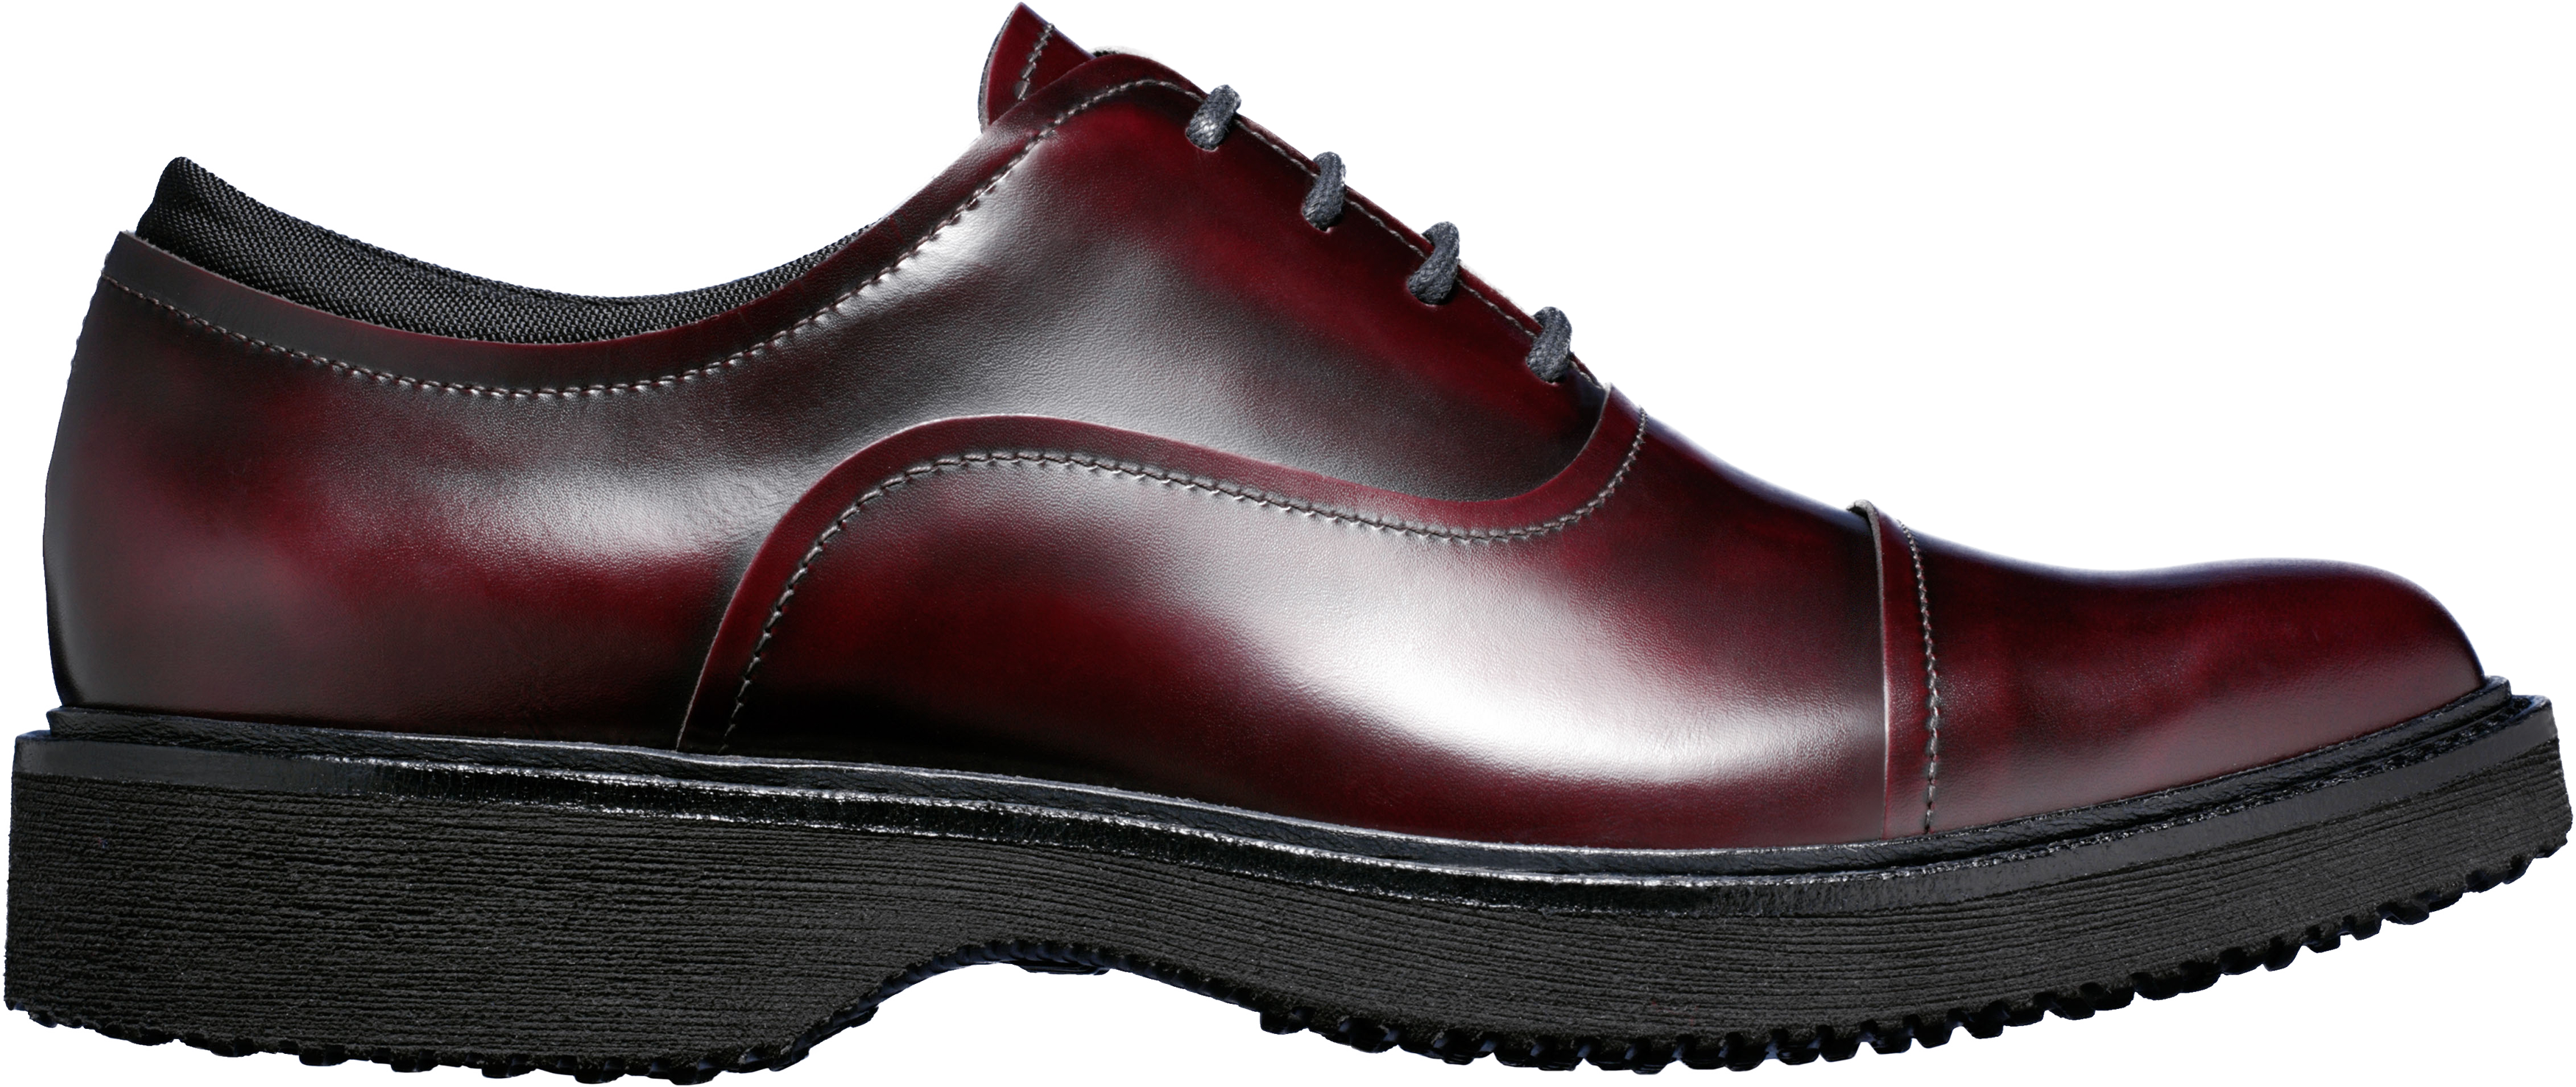 Leather shoes png. Men image purepng free